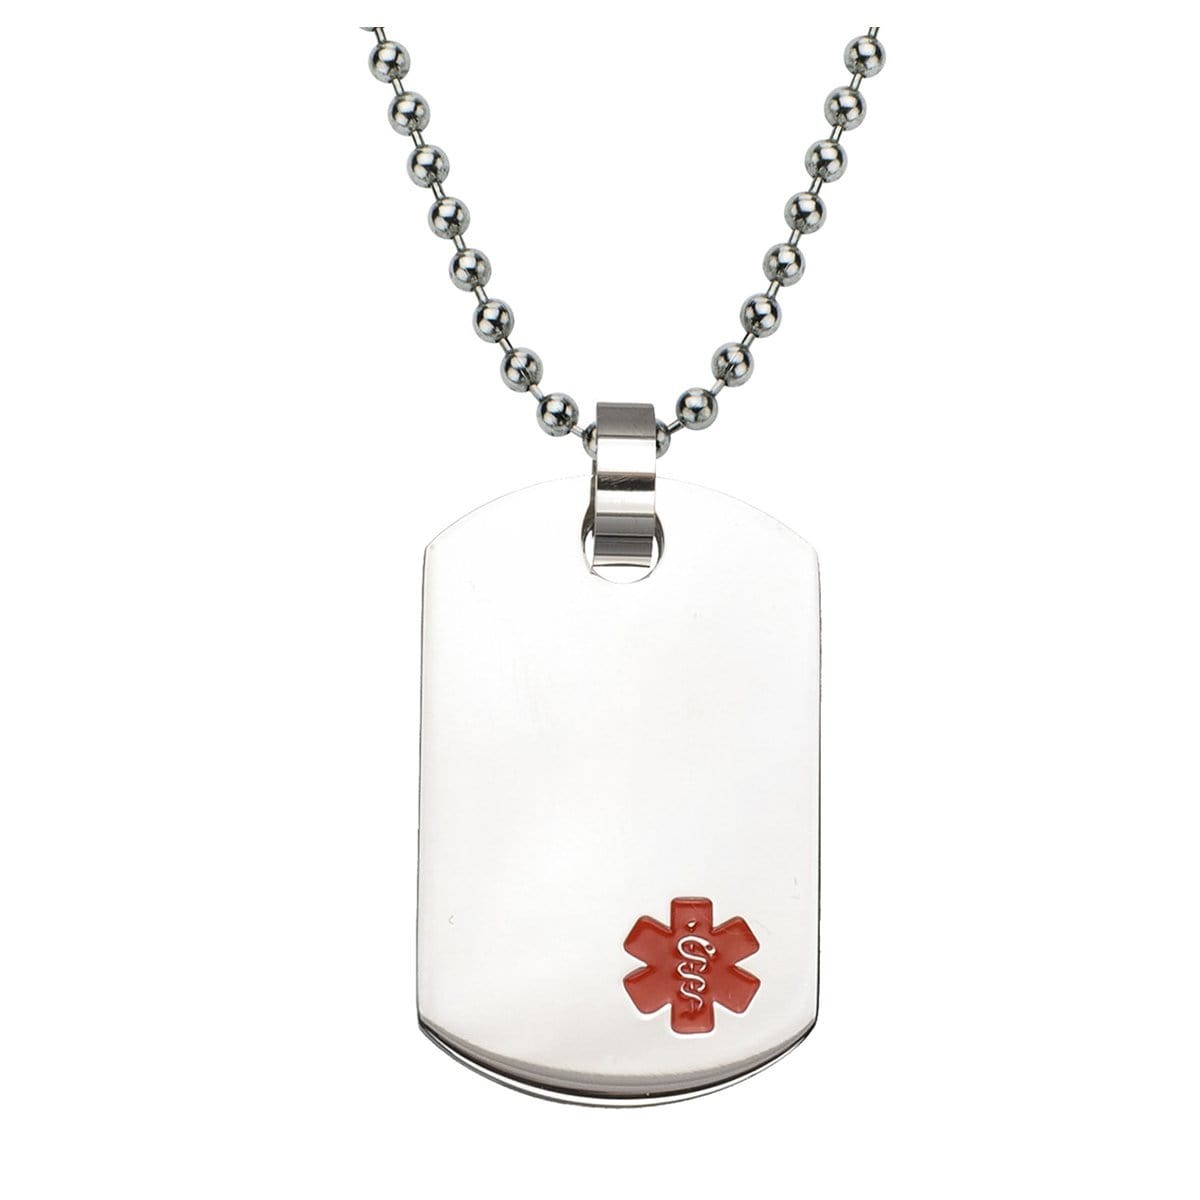 Red & Silver Stainless Steel Engravable Medical ID Tag Pendant & Chain